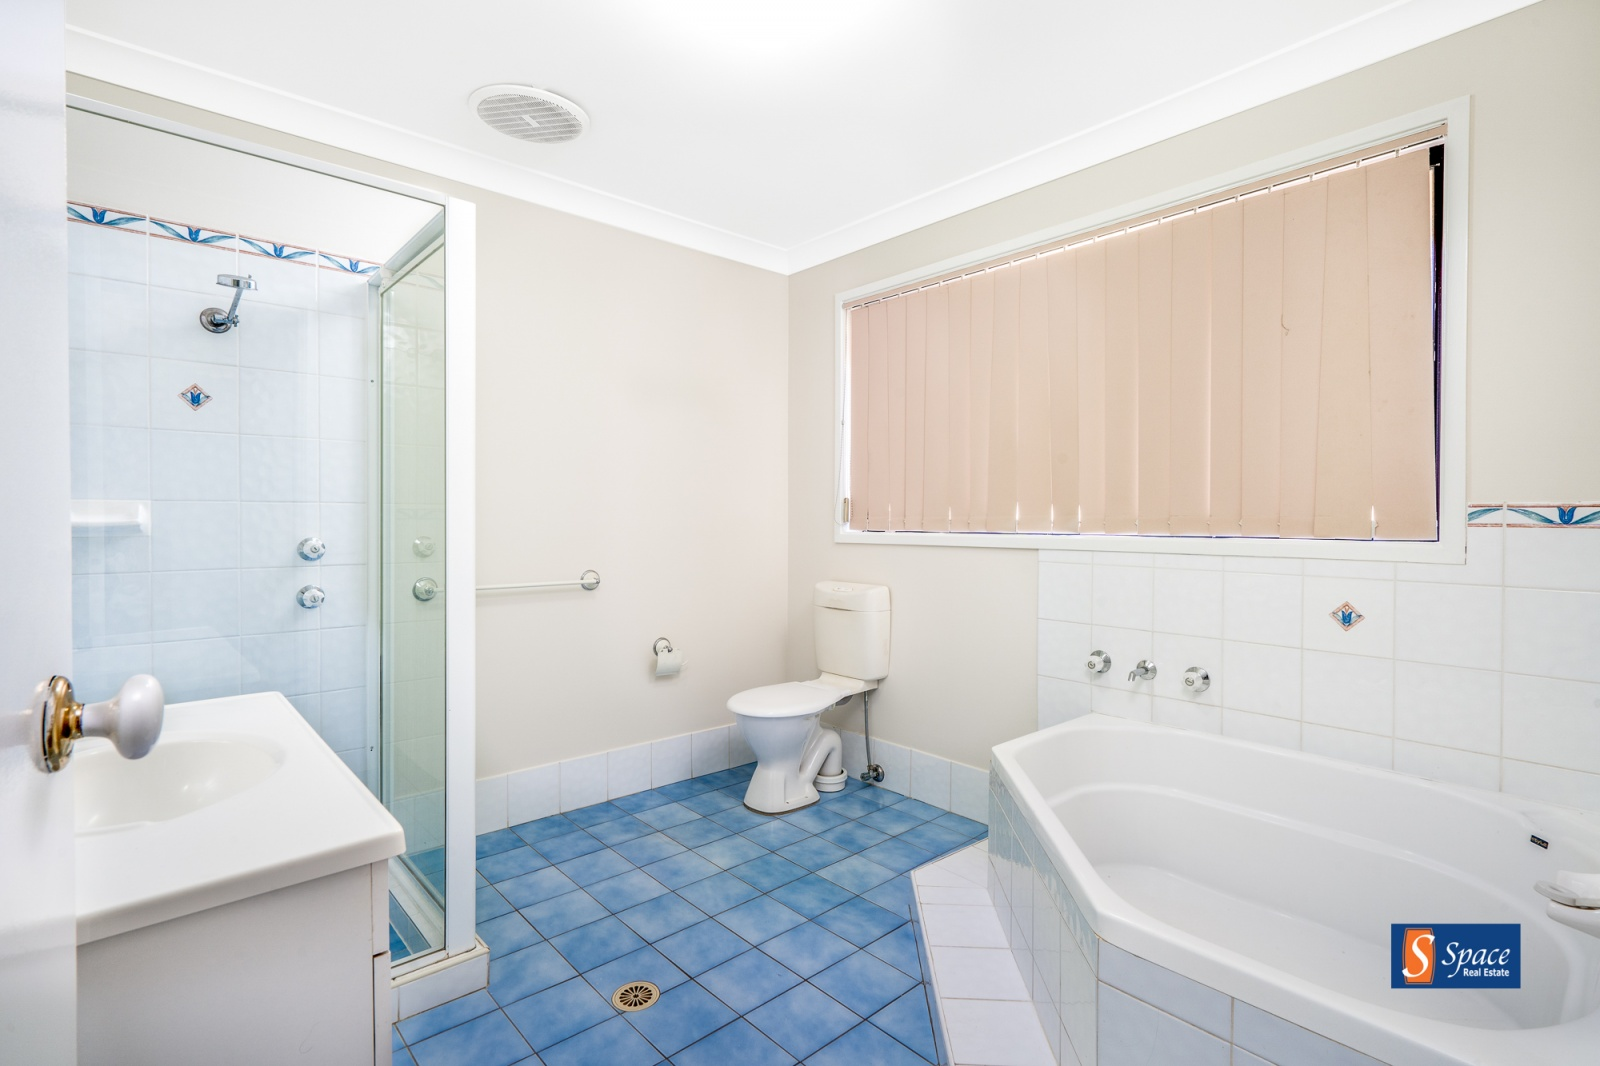 20 Stockman Road,Currans Hill,NSW,3 Bedrooms Bedrooms,2 BathroomsBathrooms,House,Stockman Road,1131